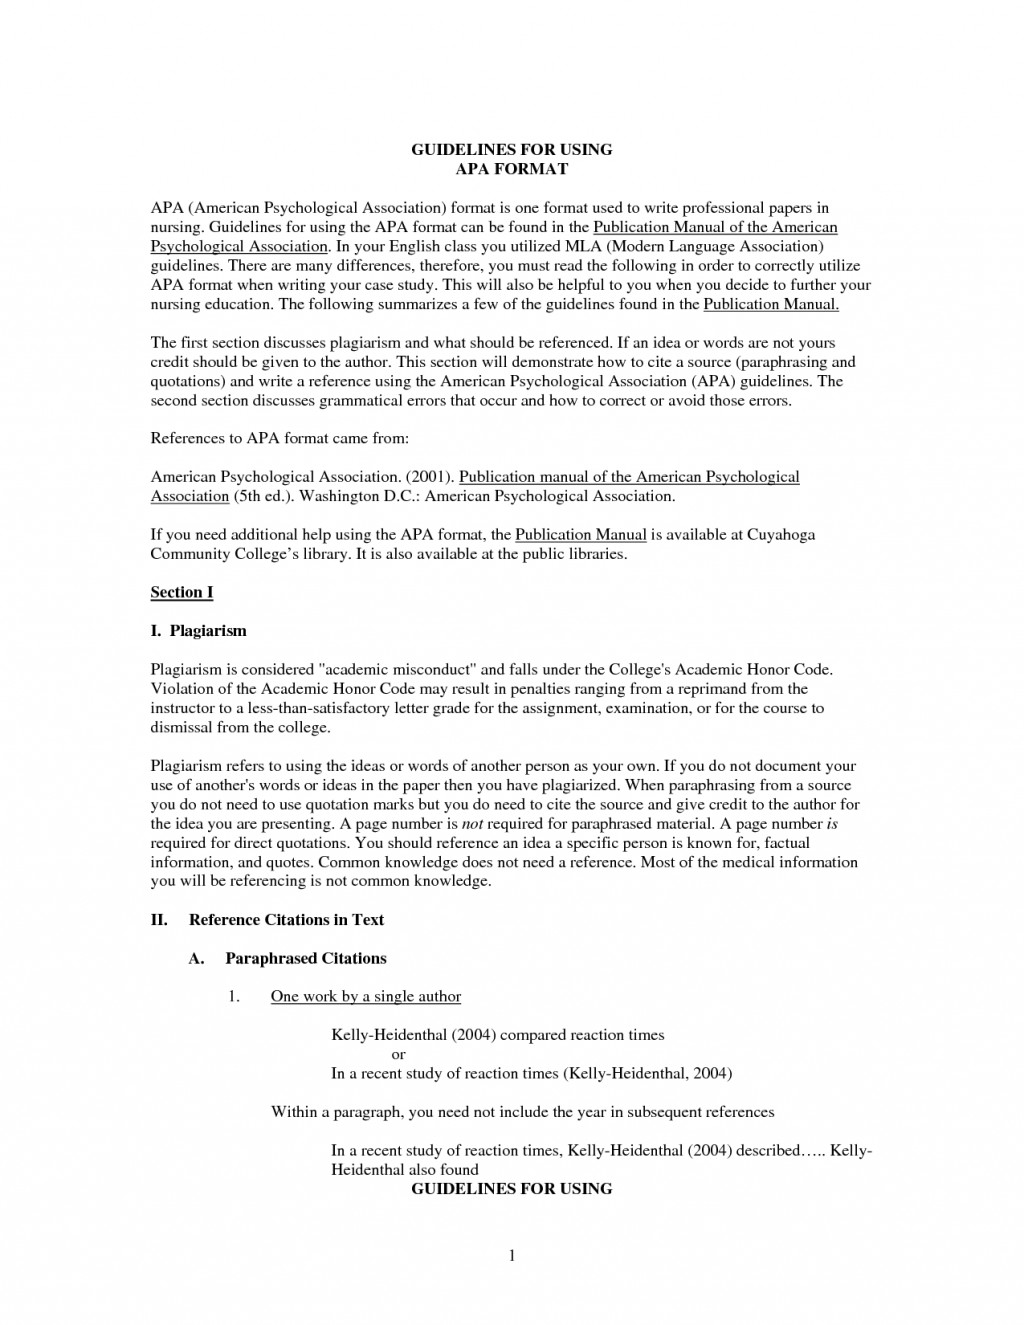 012 Apa Format Sample Research Paper Doc Brilliant Ideas Of Example How To Cite Using In Fancy Awful Large